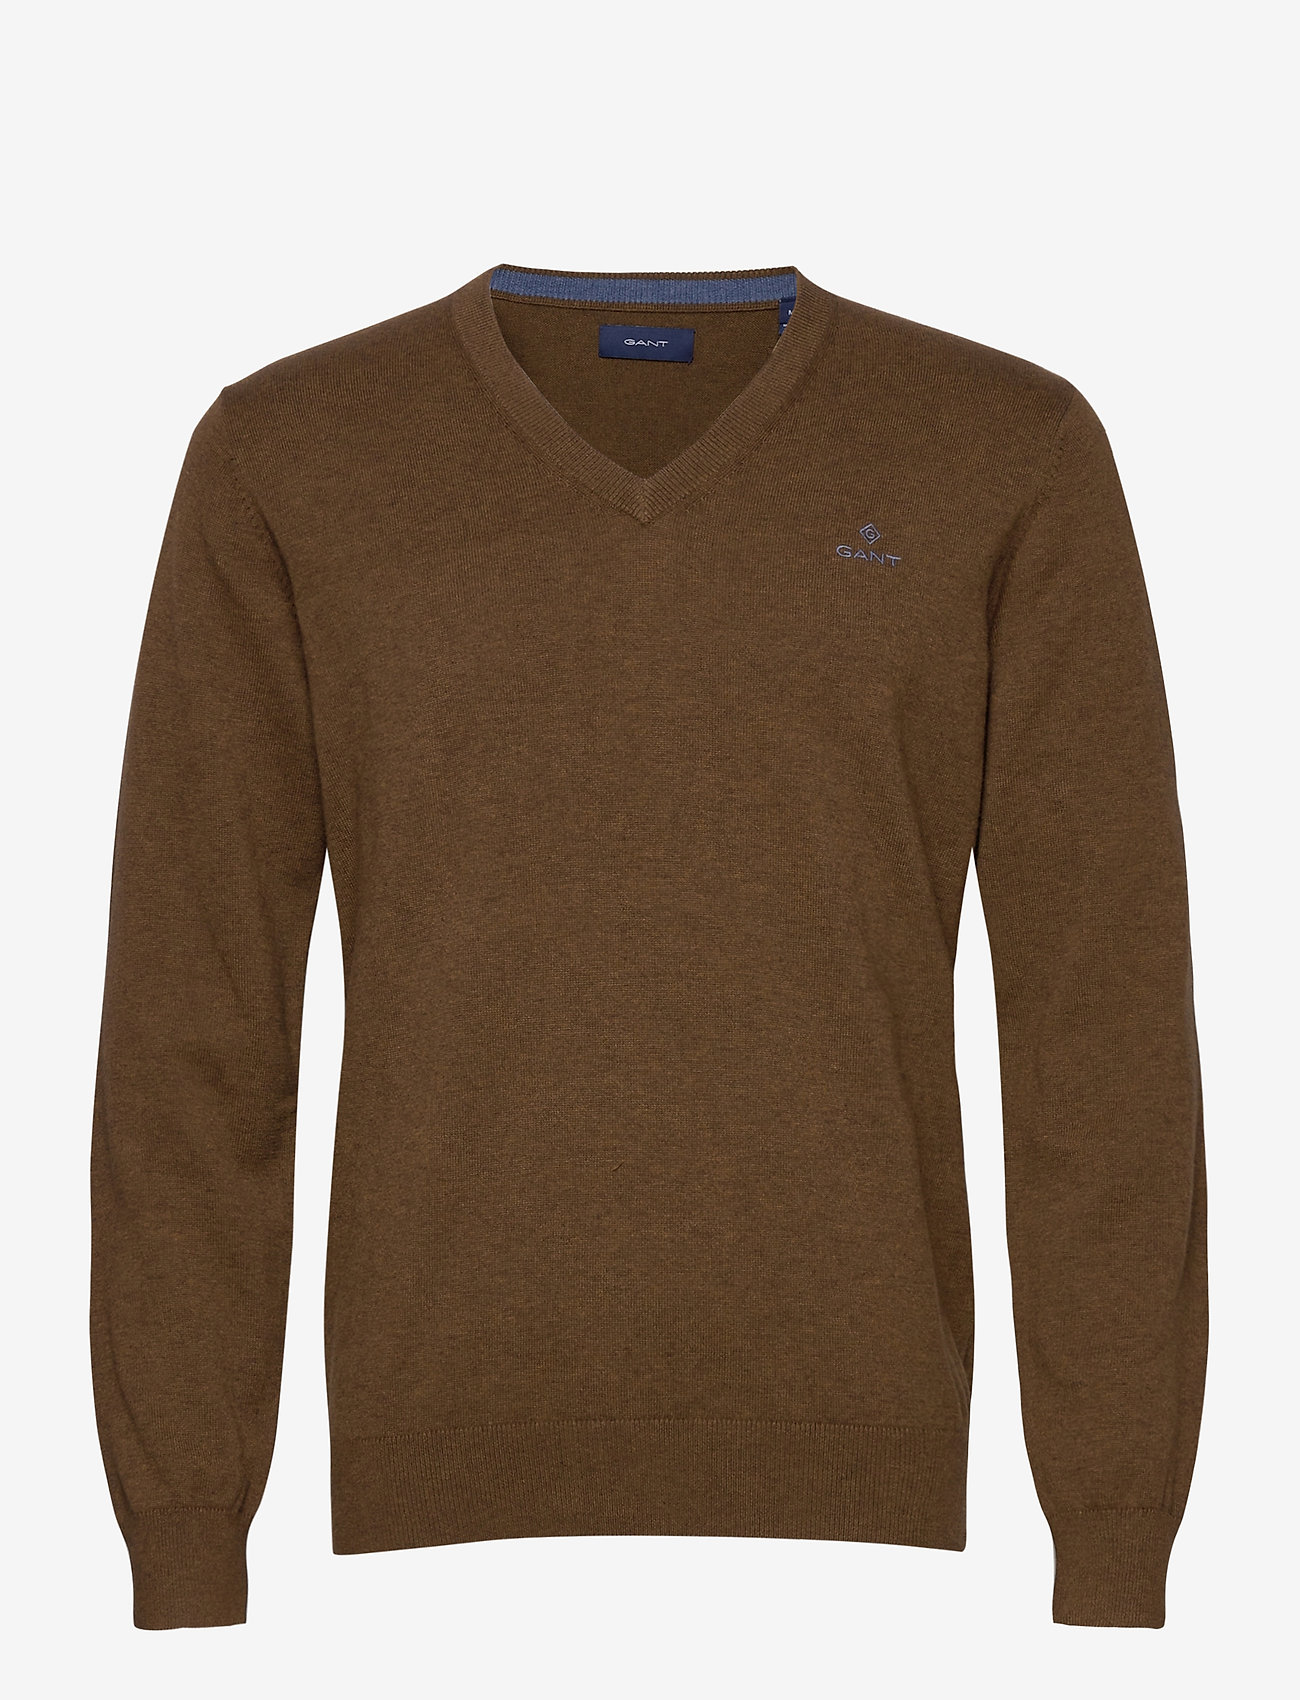 GANT - CLASSIC COTTON V-NECK - knitted v-necks - hazelnut melange - 0